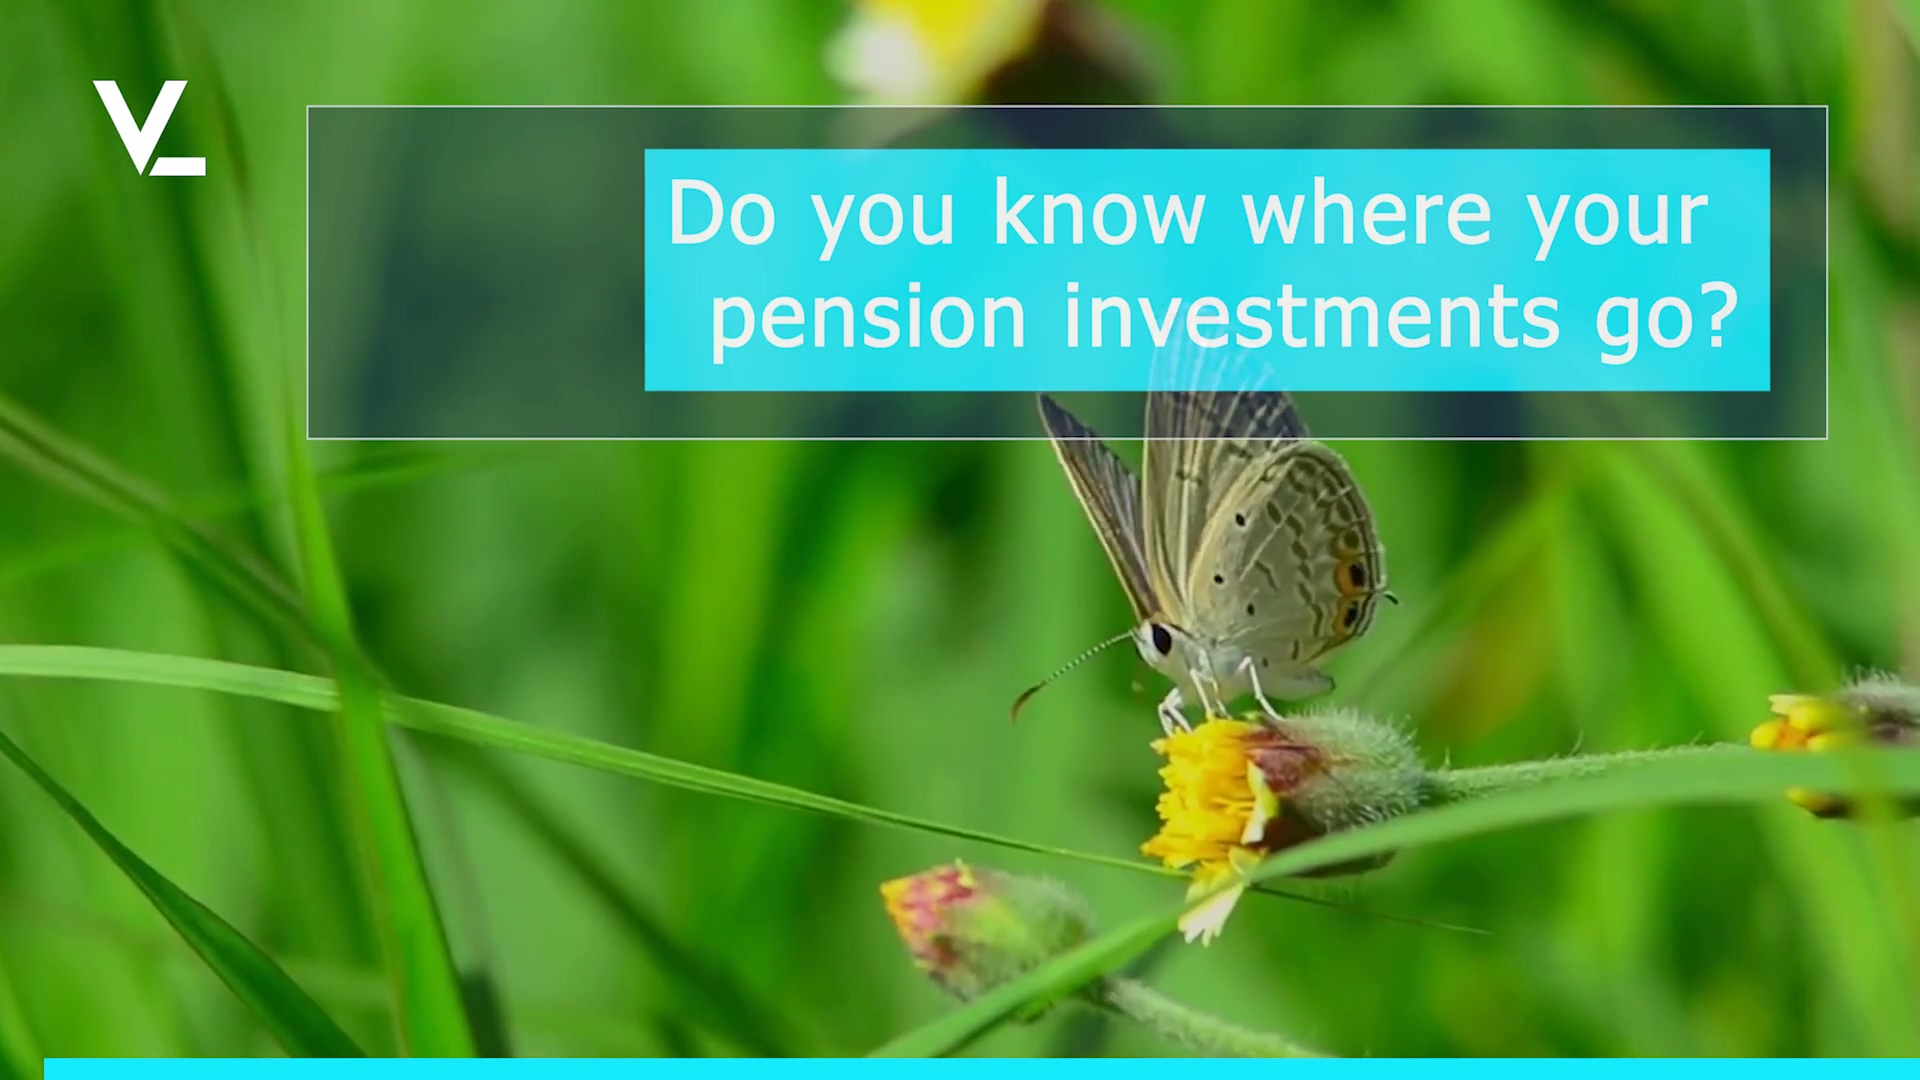 Video 1 - Do you know where your pension investments go?